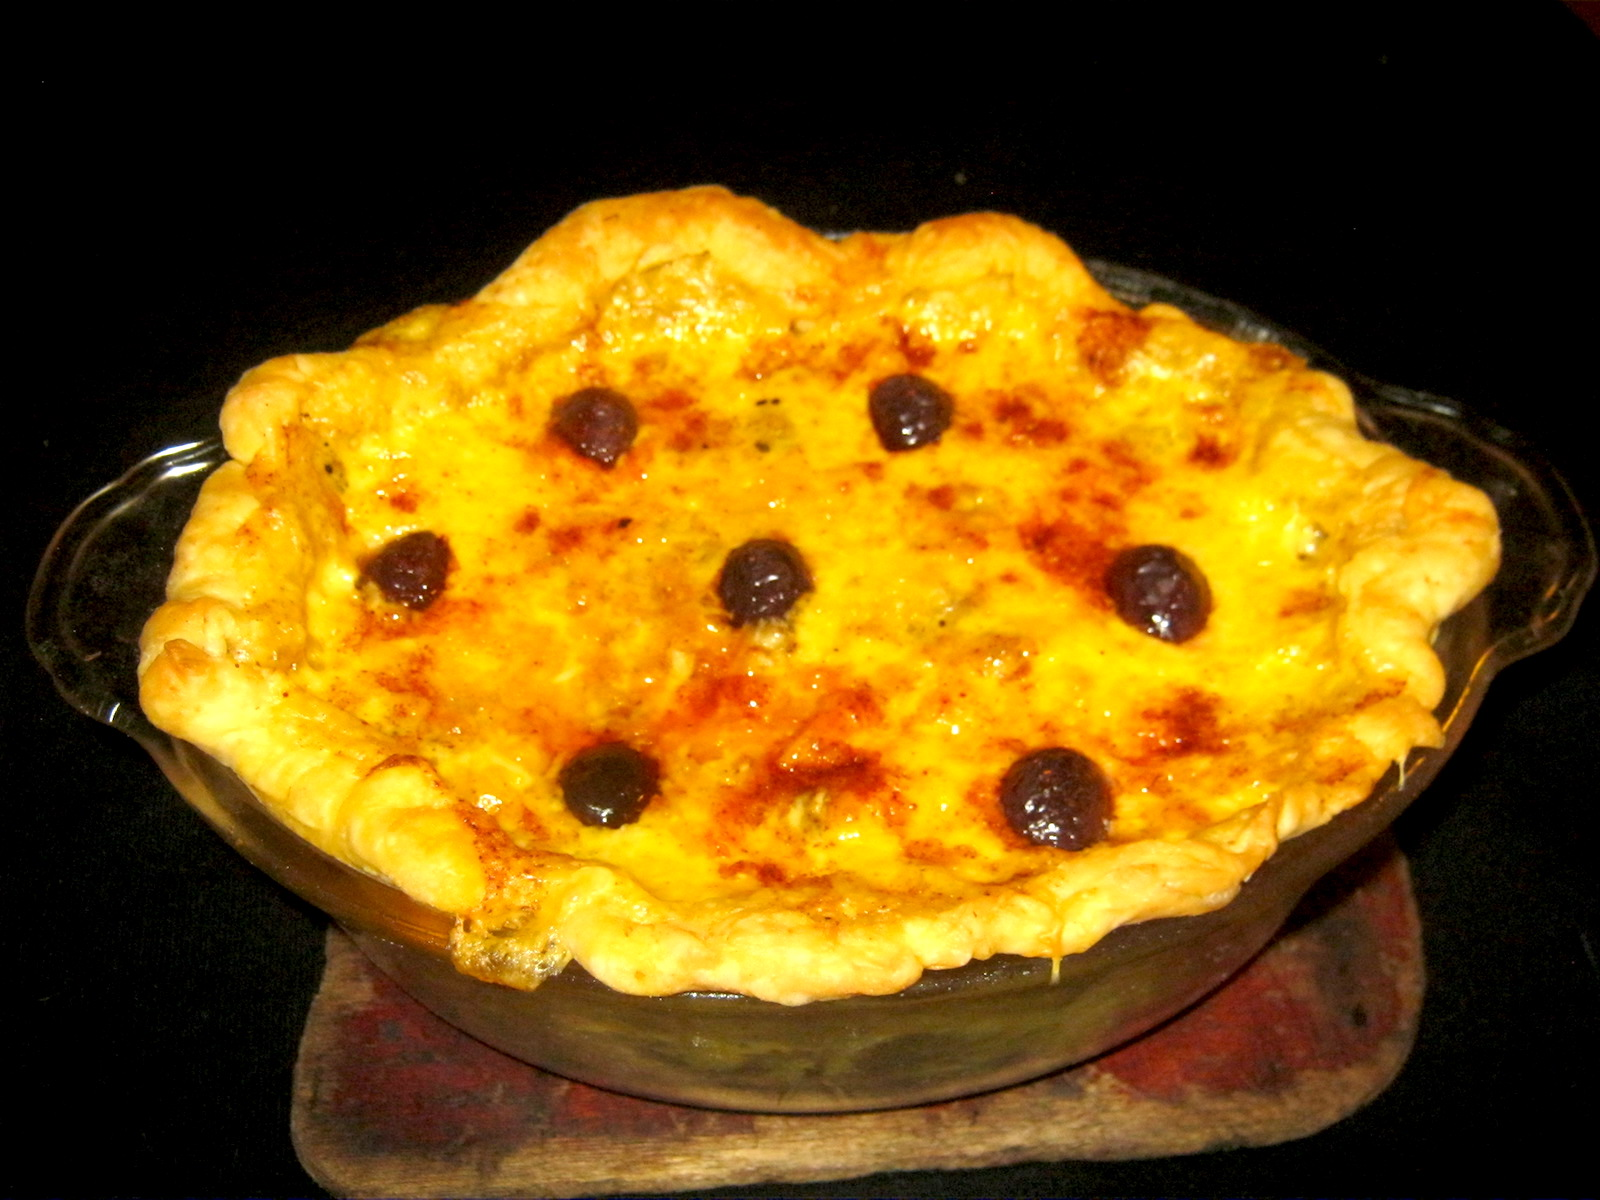 Baked chicken pot pie in a casserole